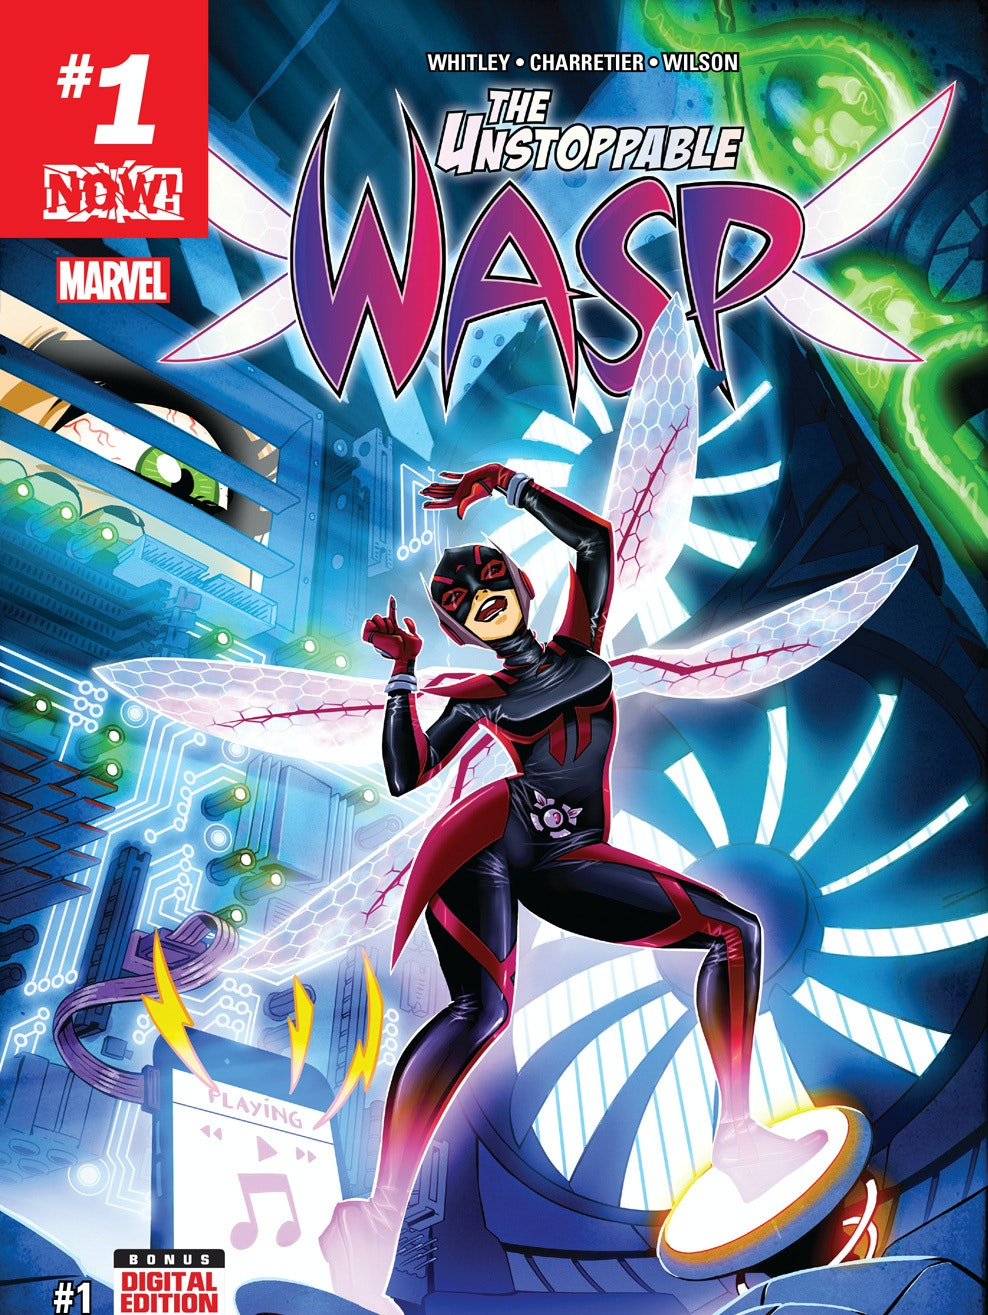 Cover for Wasp #1 by Elsa Charretier for Marvel Comics